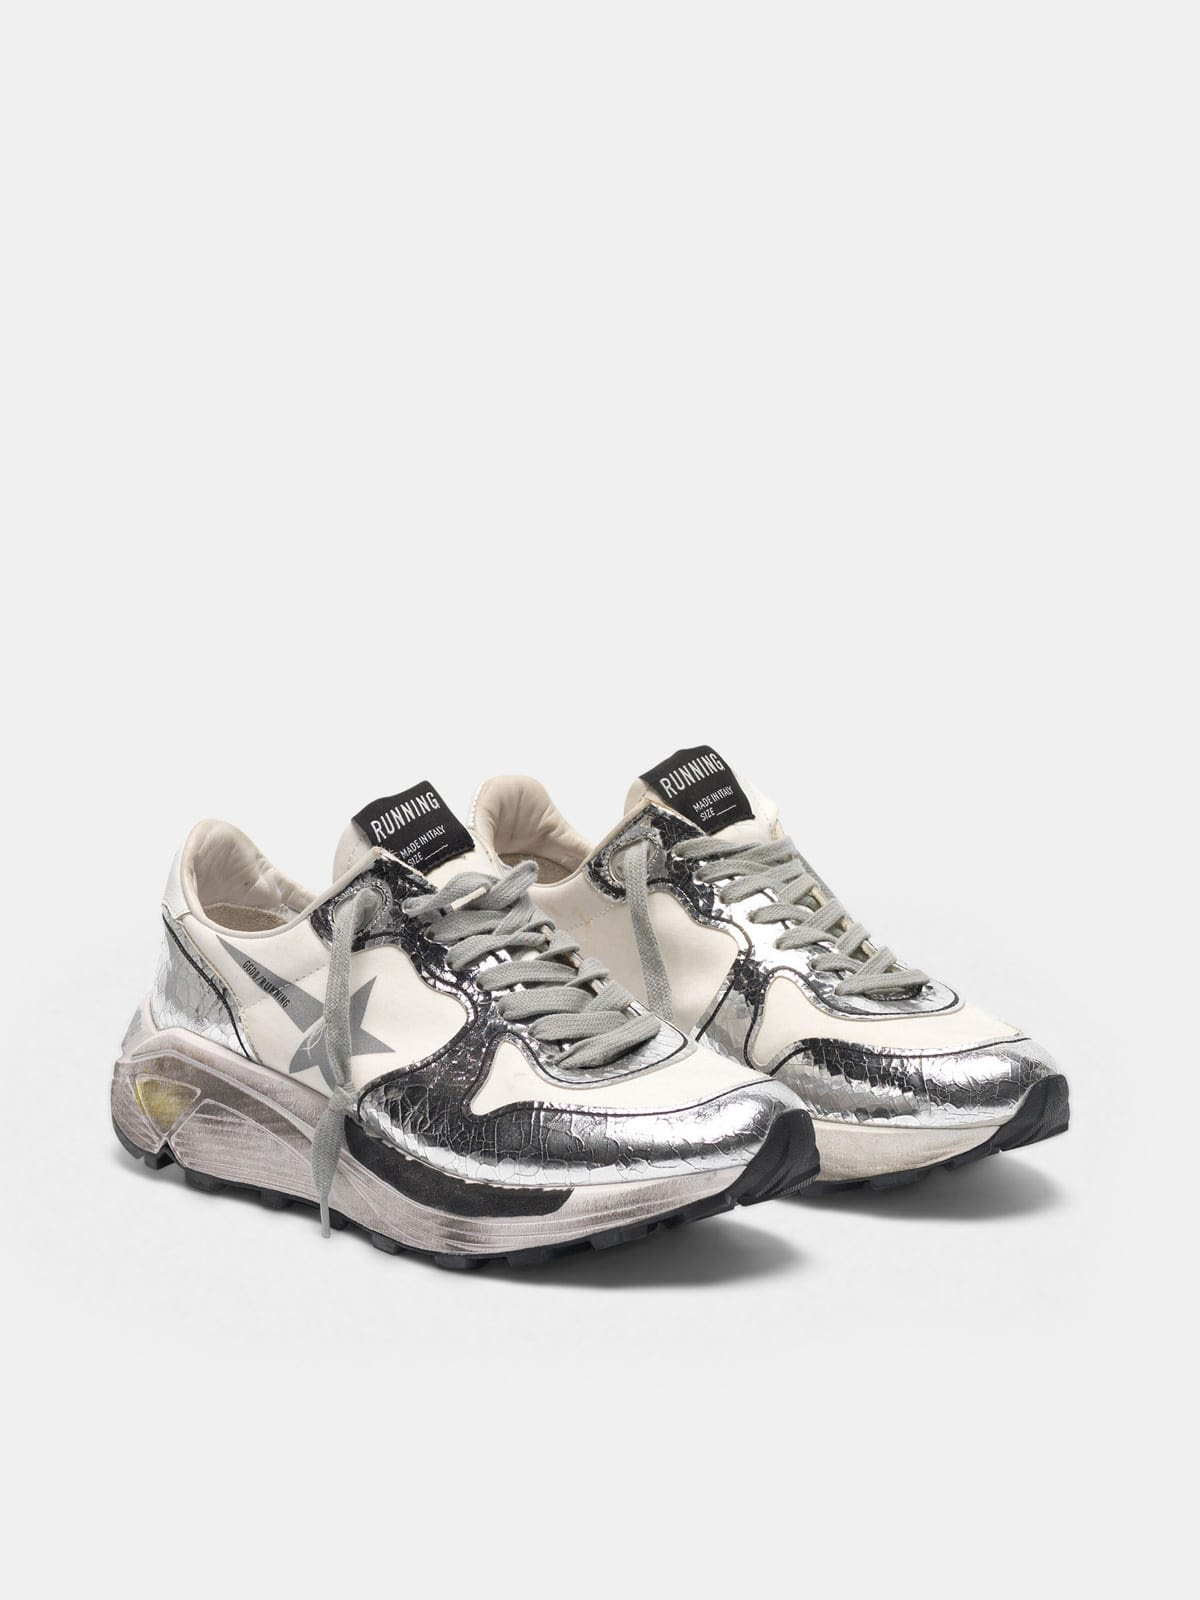 Silver and white Running Sole sneakers